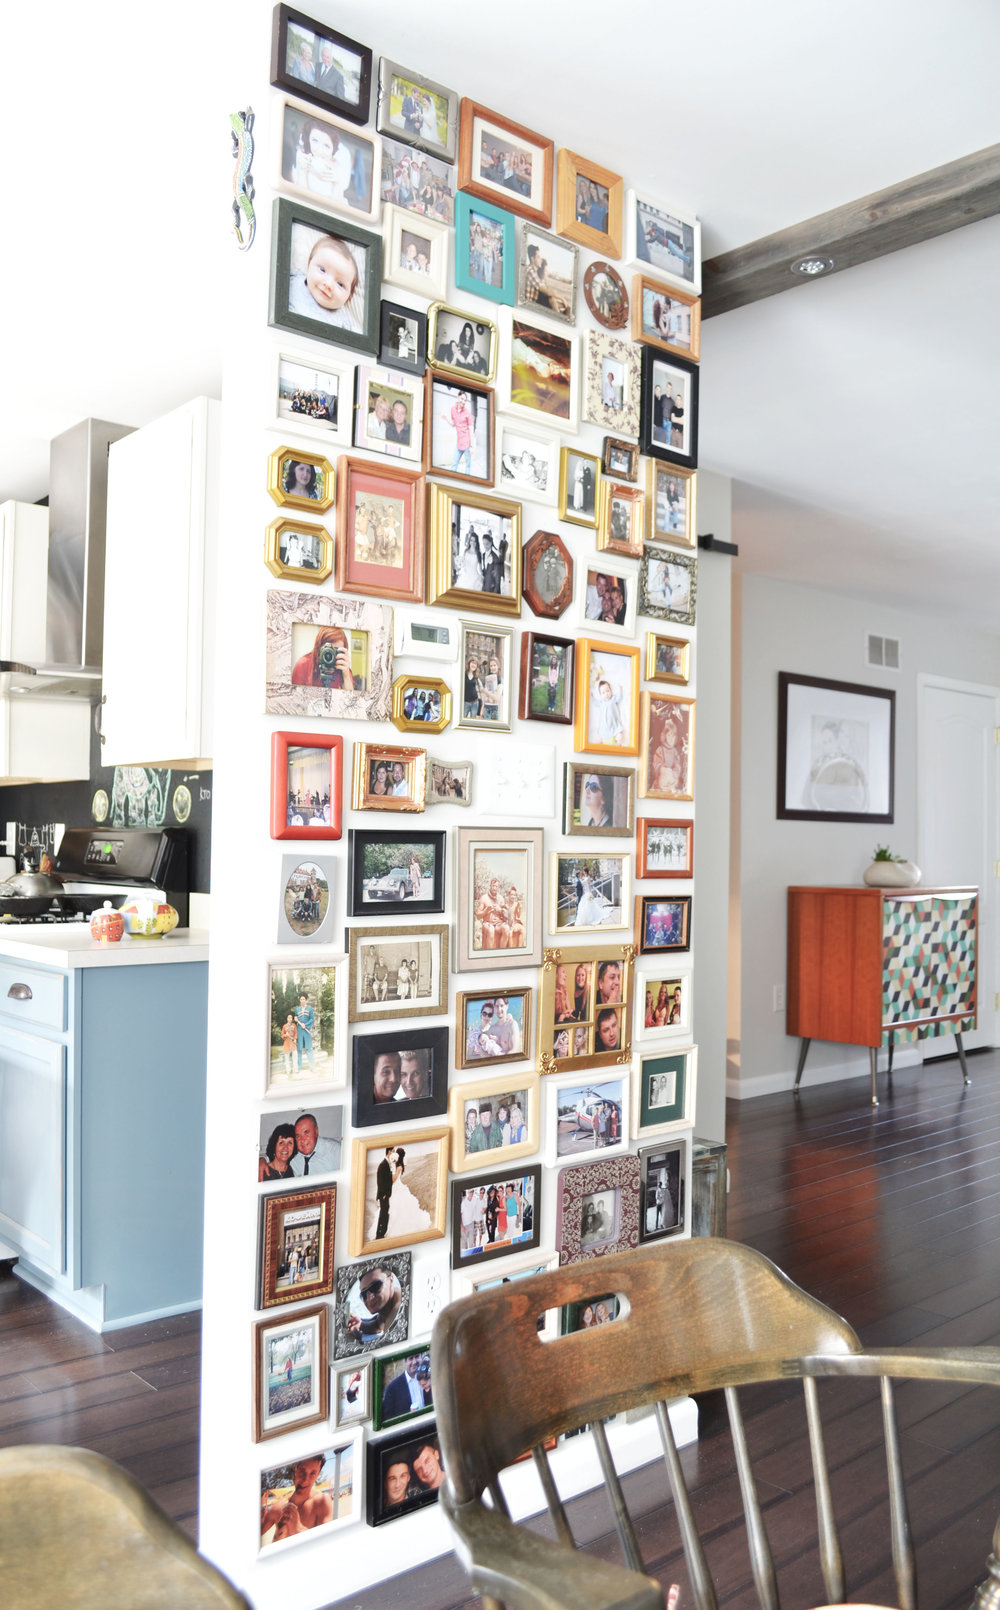 Floor to ceiling gallery wall with thrift store photo frames.